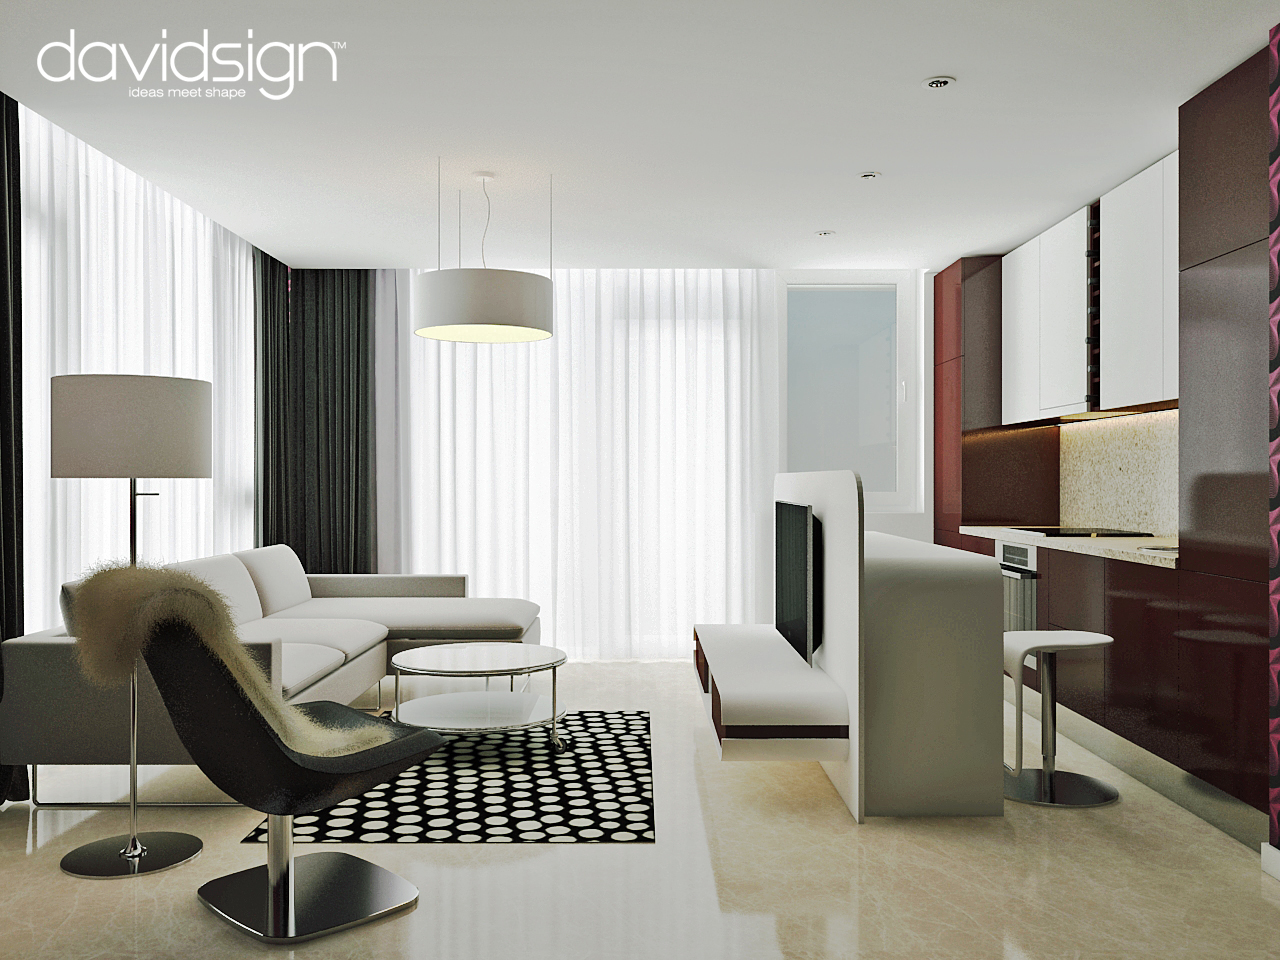 Design interior apartament bloc ared oradea davidsign blog for Interior design in living room